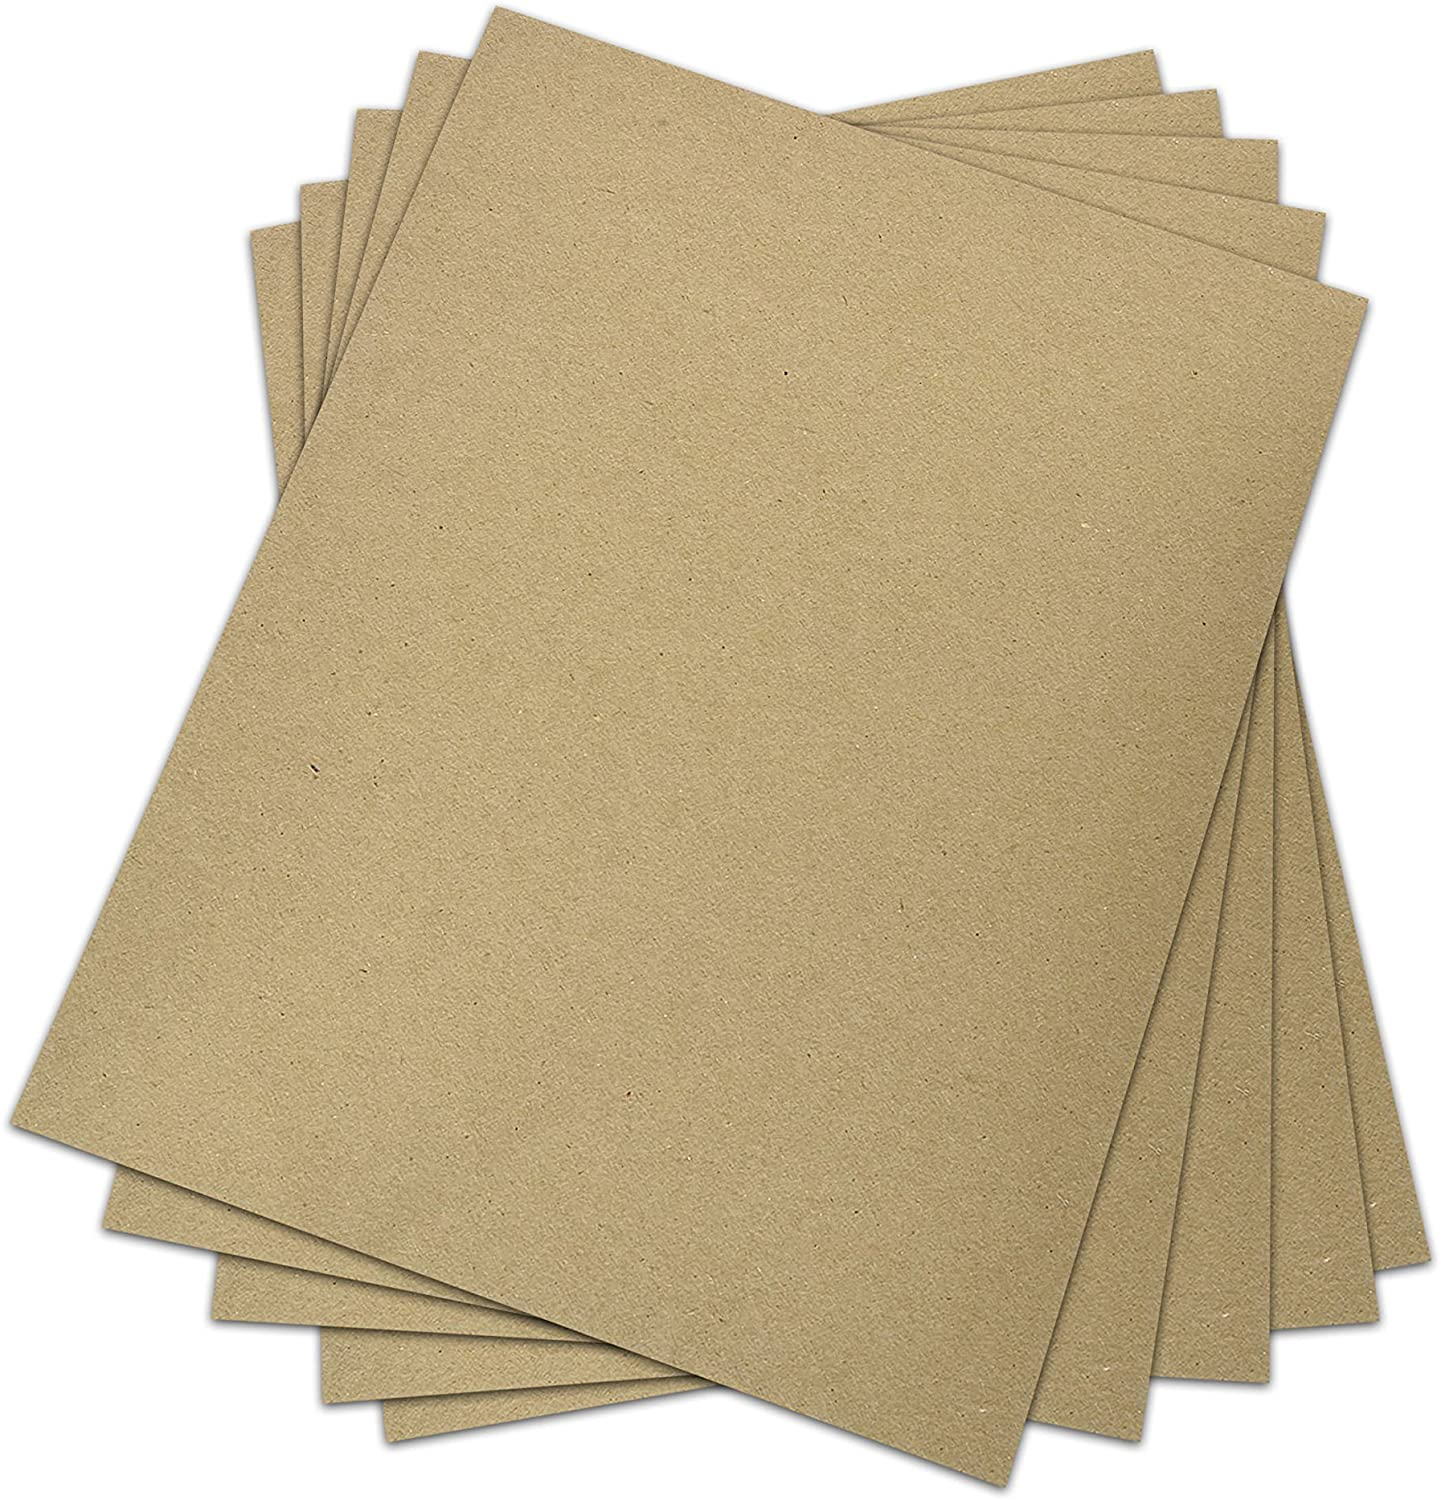 Chipboard Safety and trust - Cardboard Medium Weight 25 Pa Per Sheets 4 years warranty